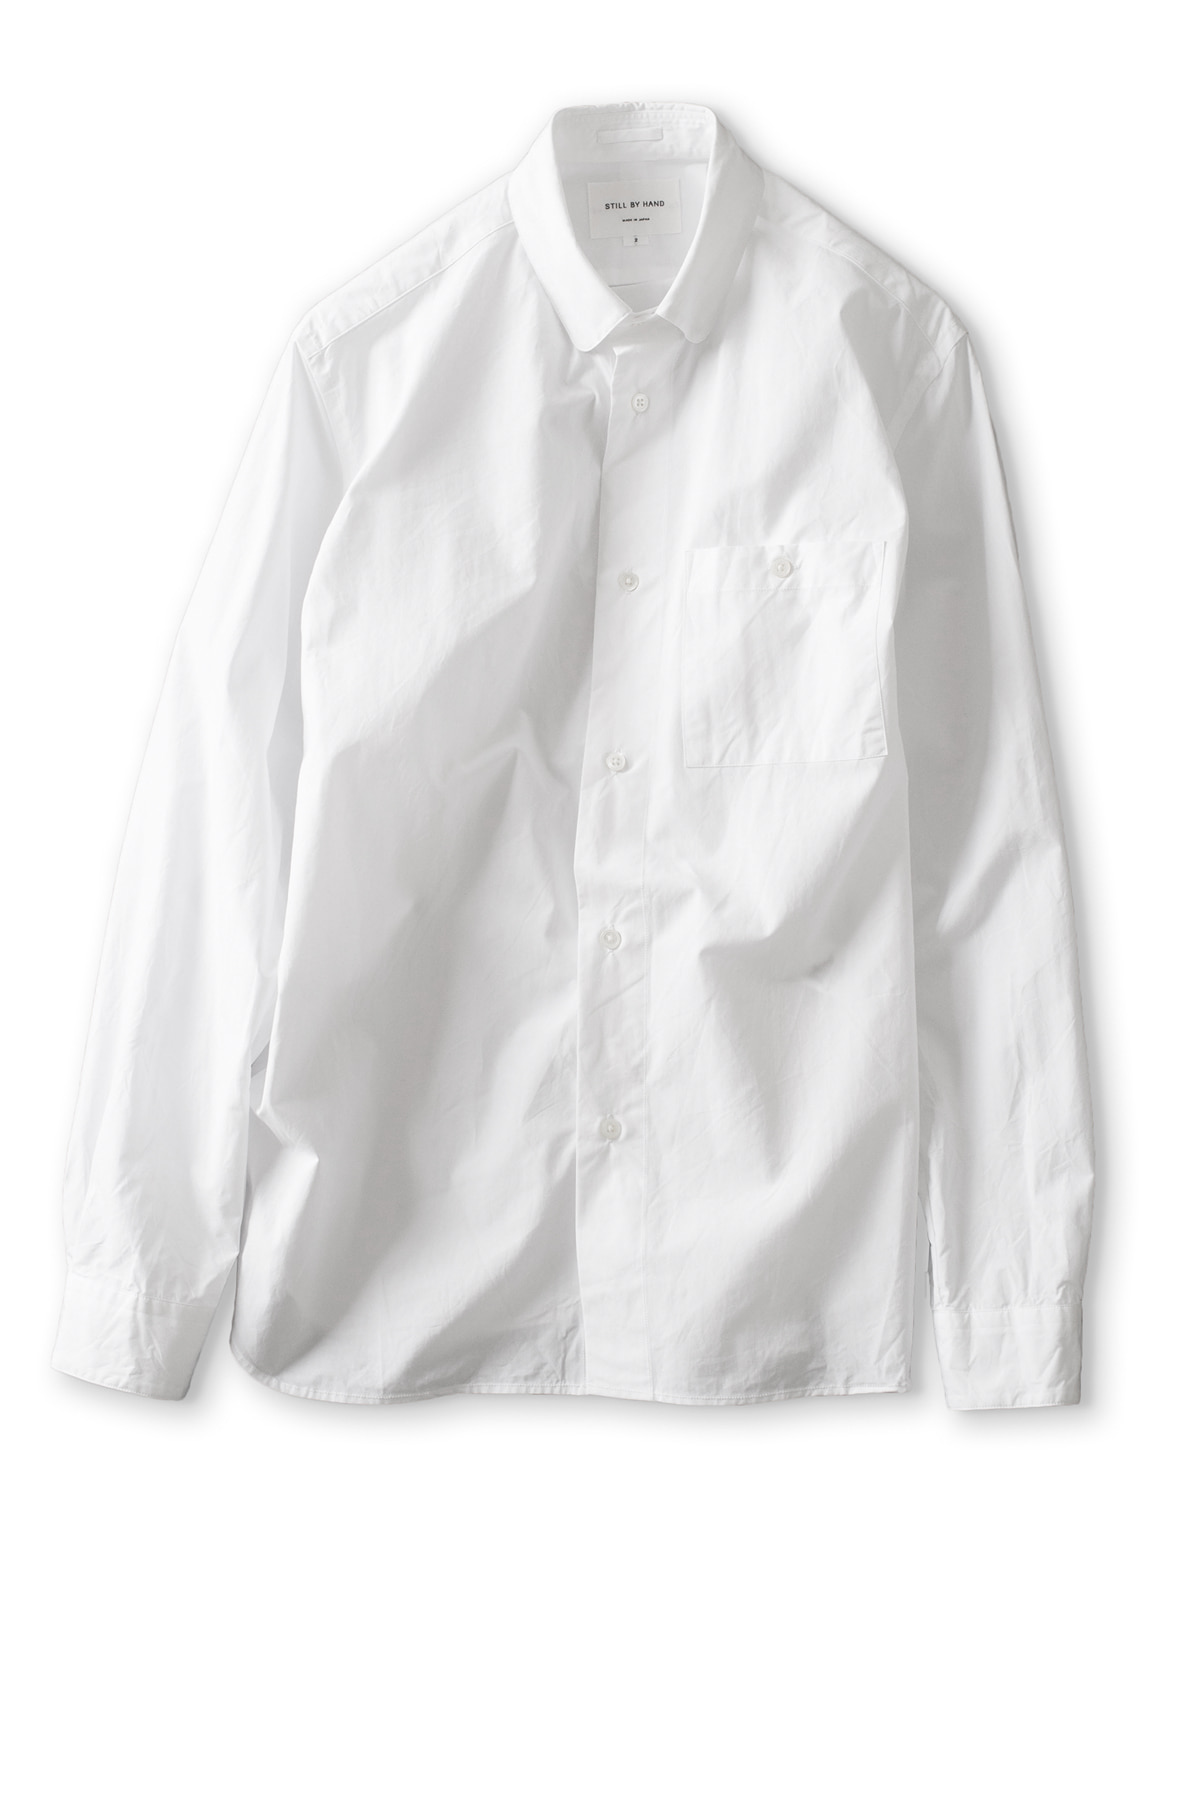 Still by Hand : Round Collar Shirt (White)